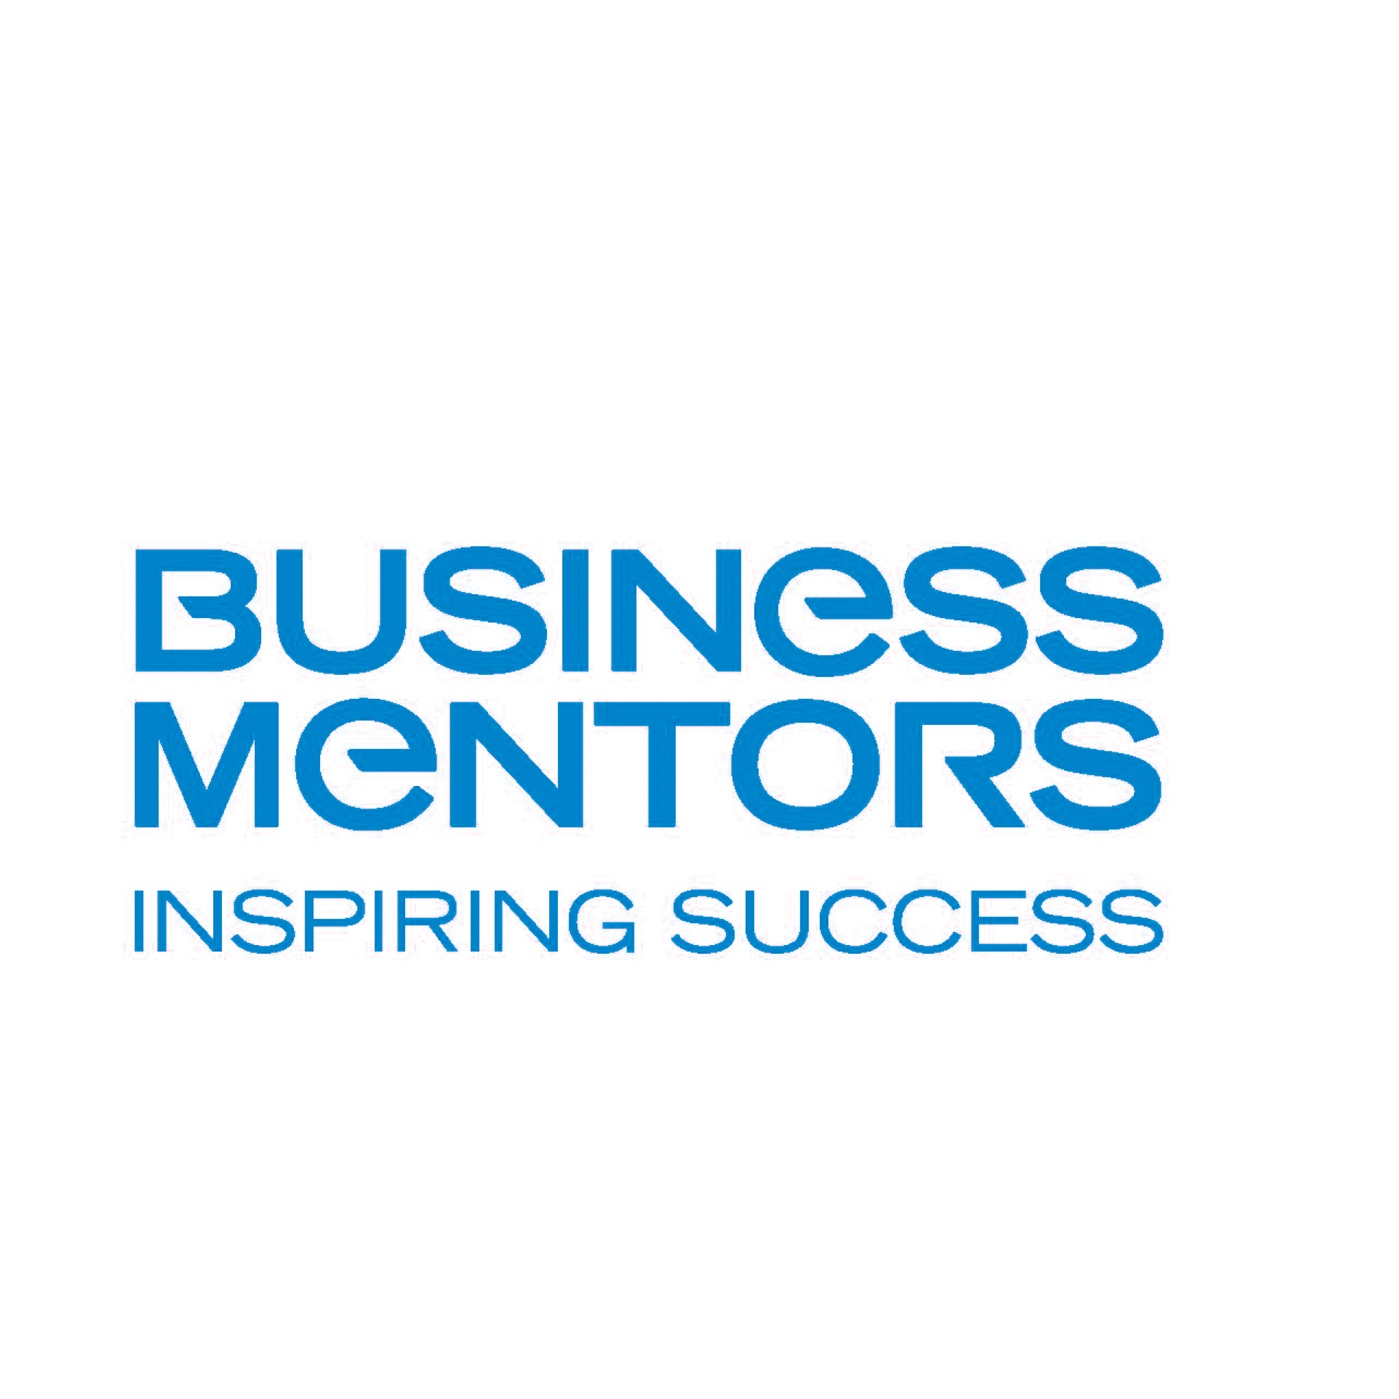 $100 subsidy on 12 months of mentoring.